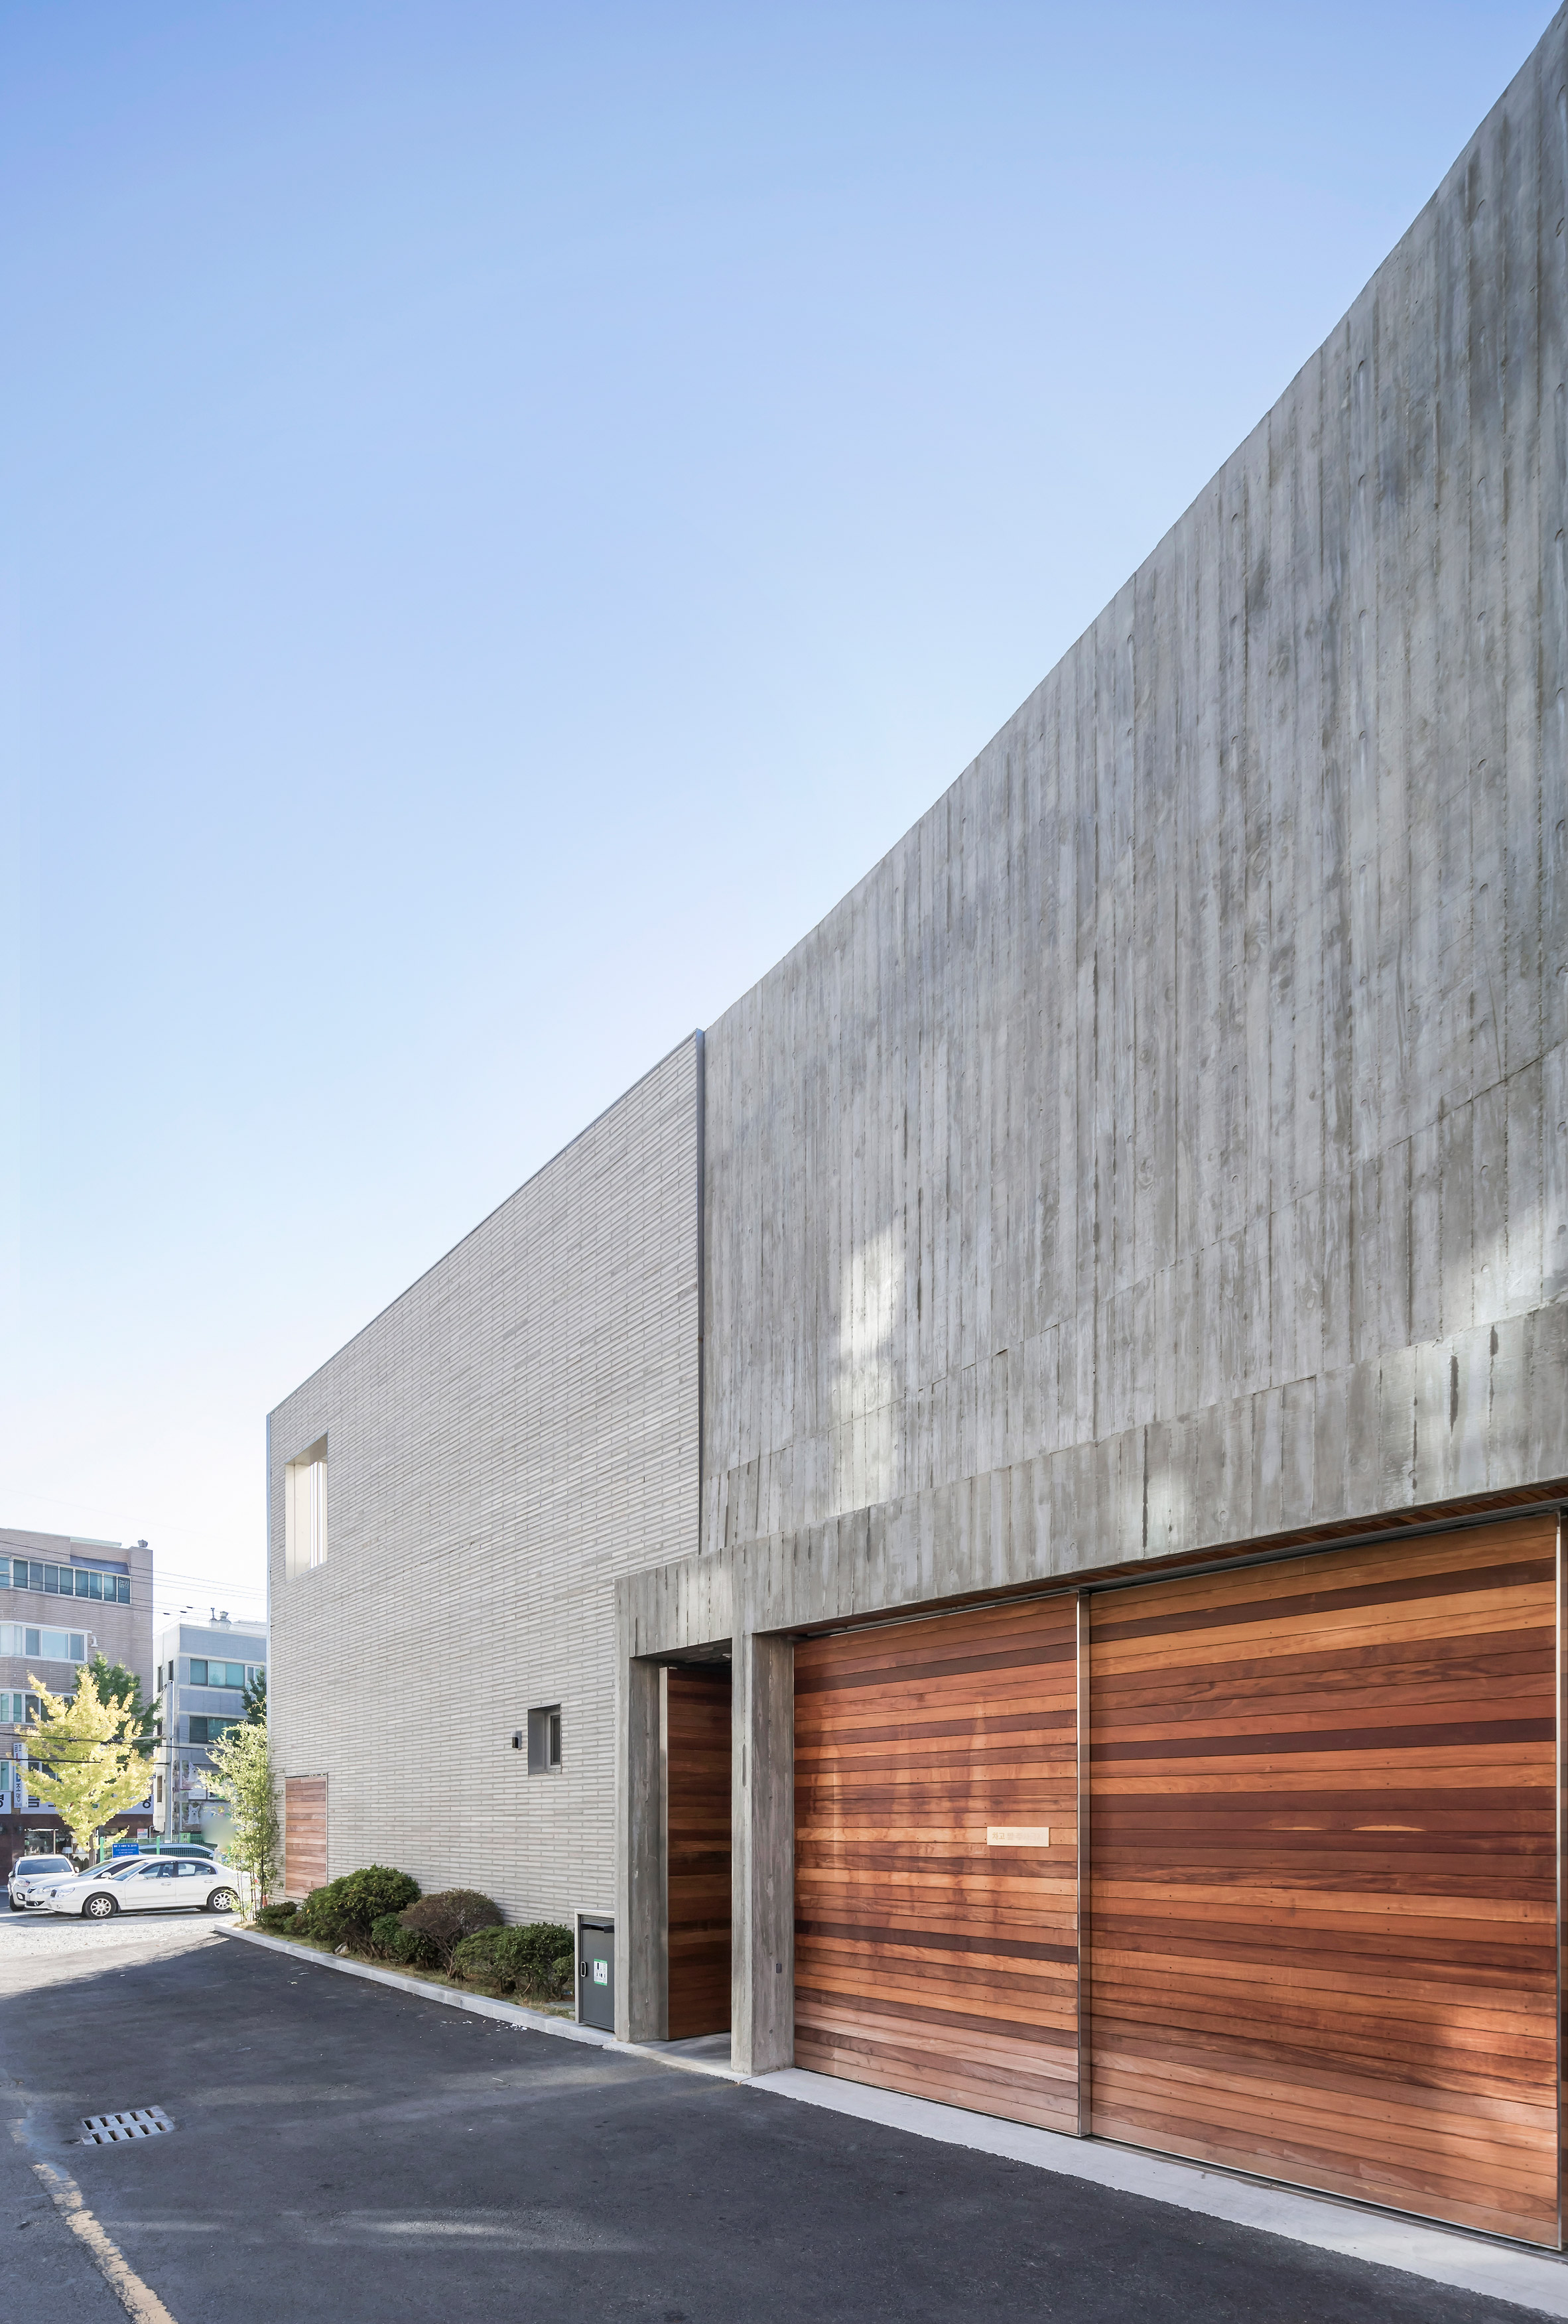 steel-grove-augmented-reality-architecture-residential-south-korea-courtyards-steel_dezeen_2364_col_23.jpg